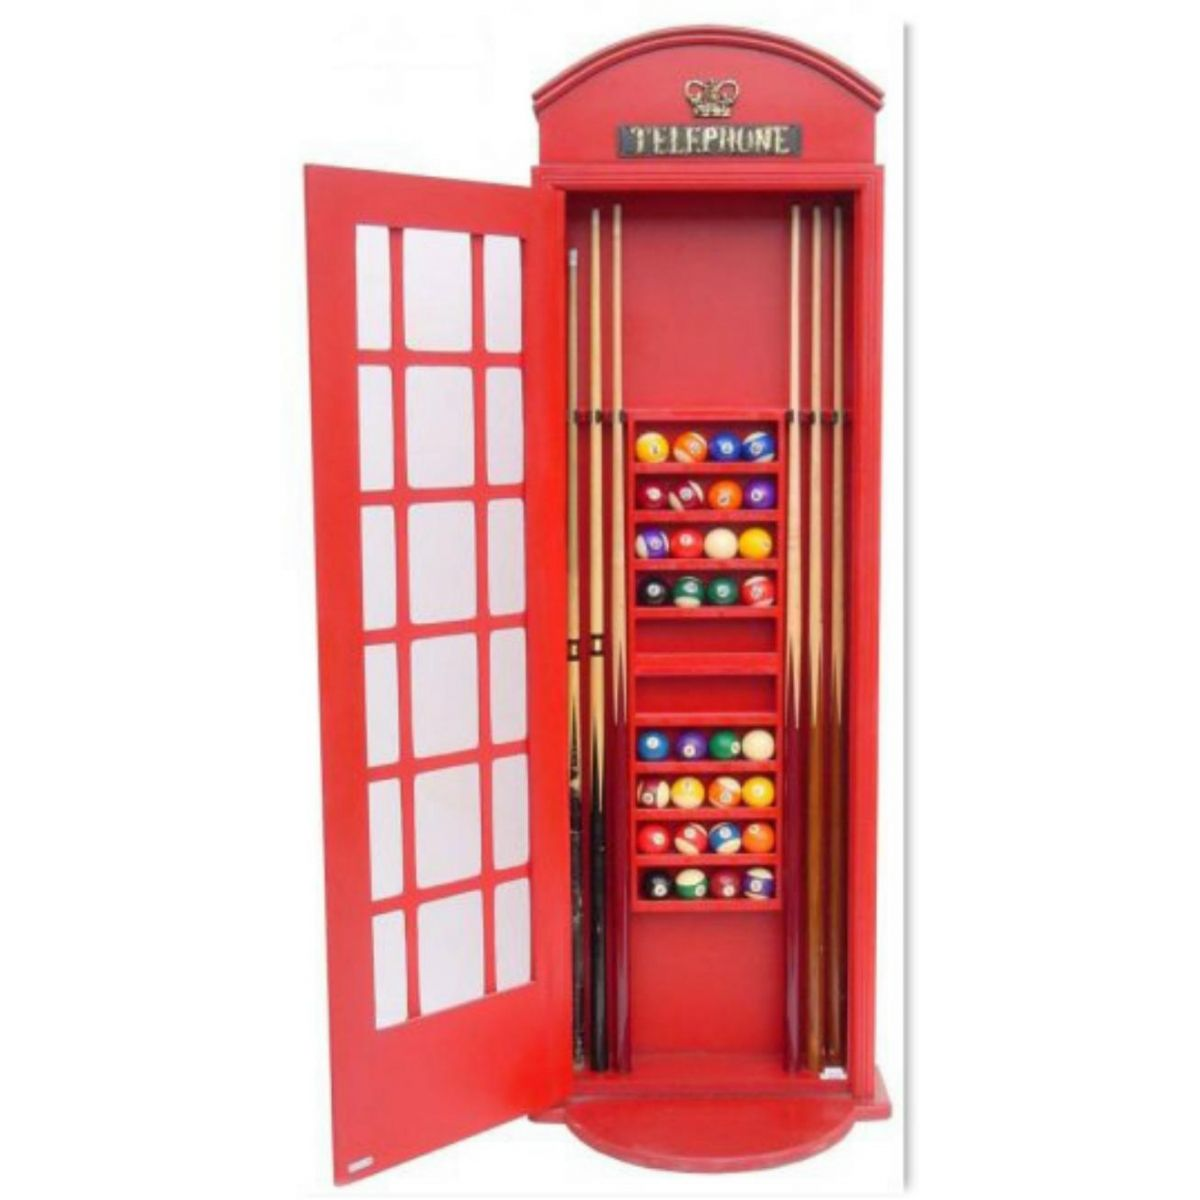 Wall mounted red english phone booth billiards pool table cabinet wall mounted red english phone booth billiards pool table cabinet for balls cue sticks chalk amipublicfo Images